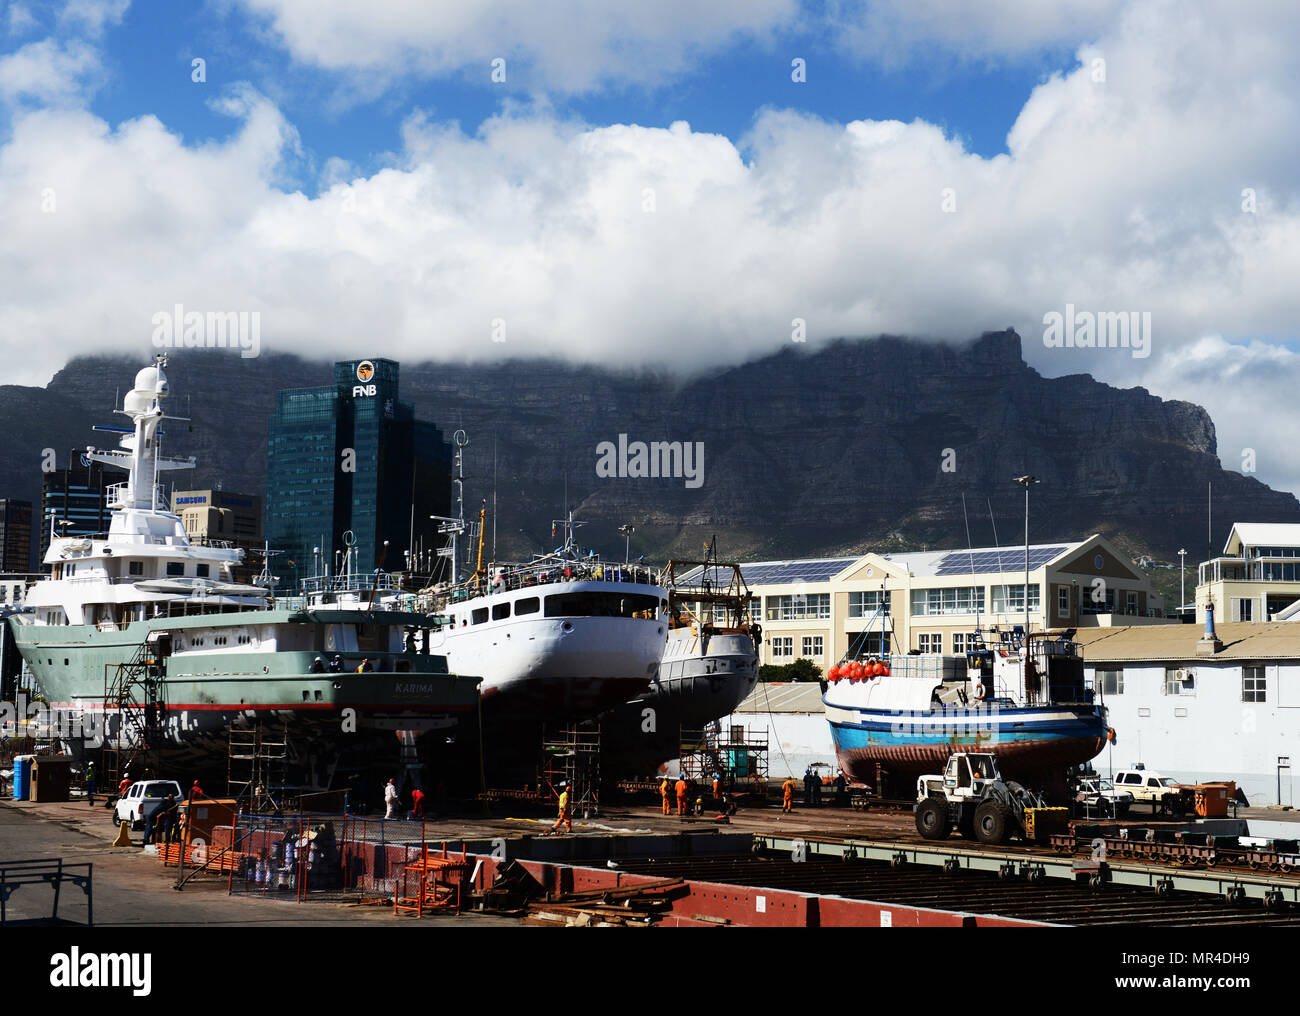 The Portside Tower in Cape Town. - Stock Image